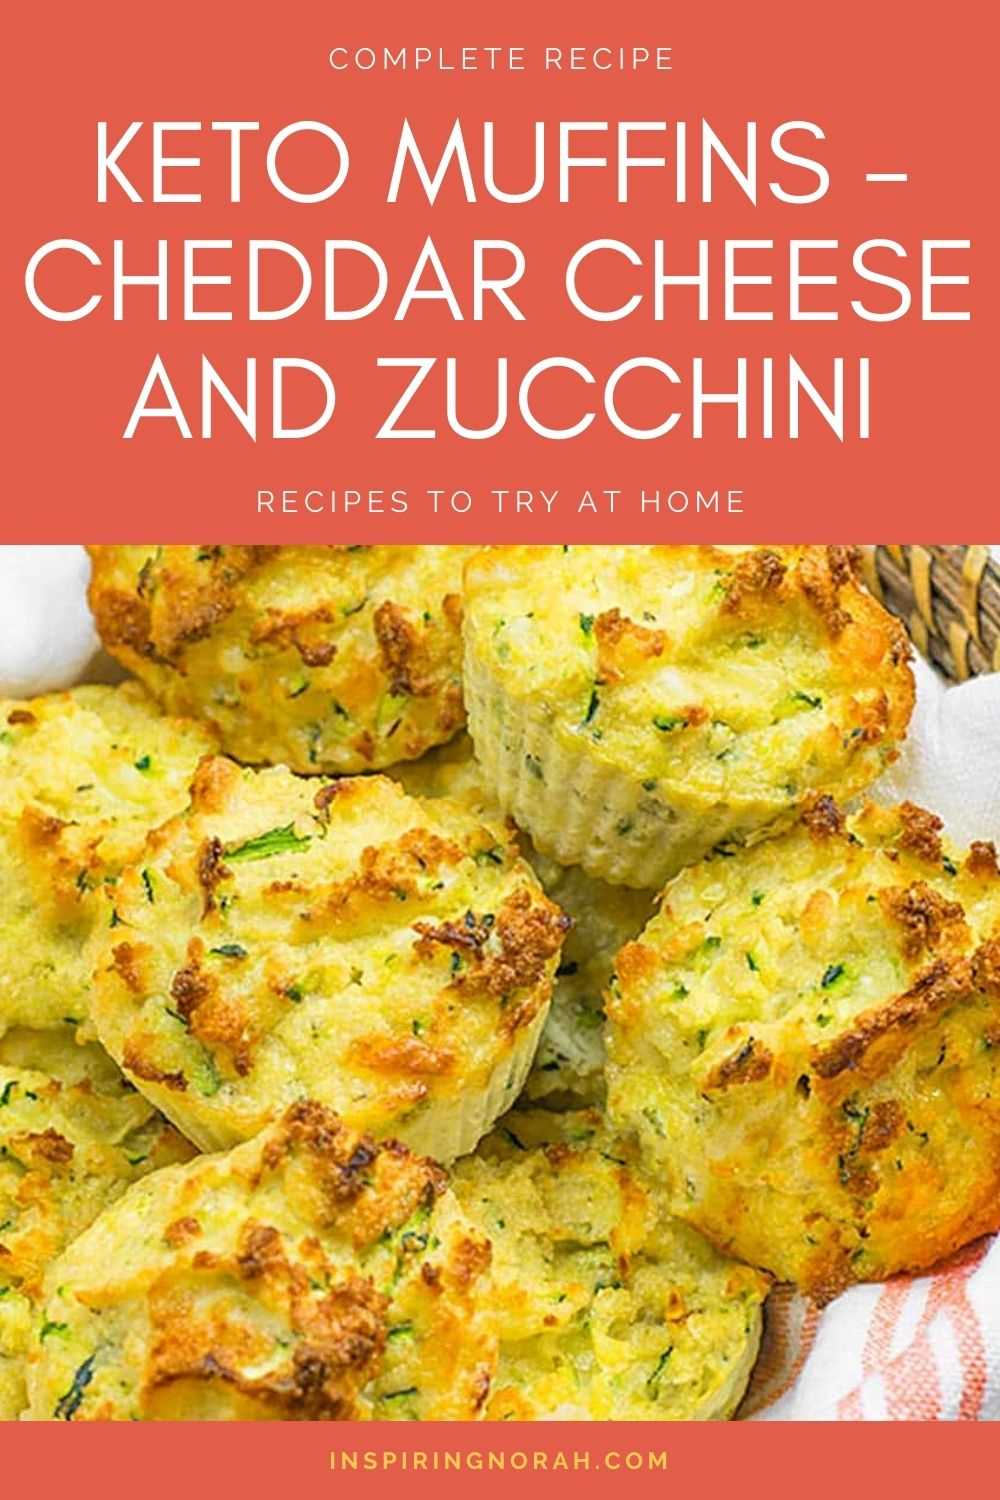 Keto Muffins - Cheddar Cheese And Zucchini